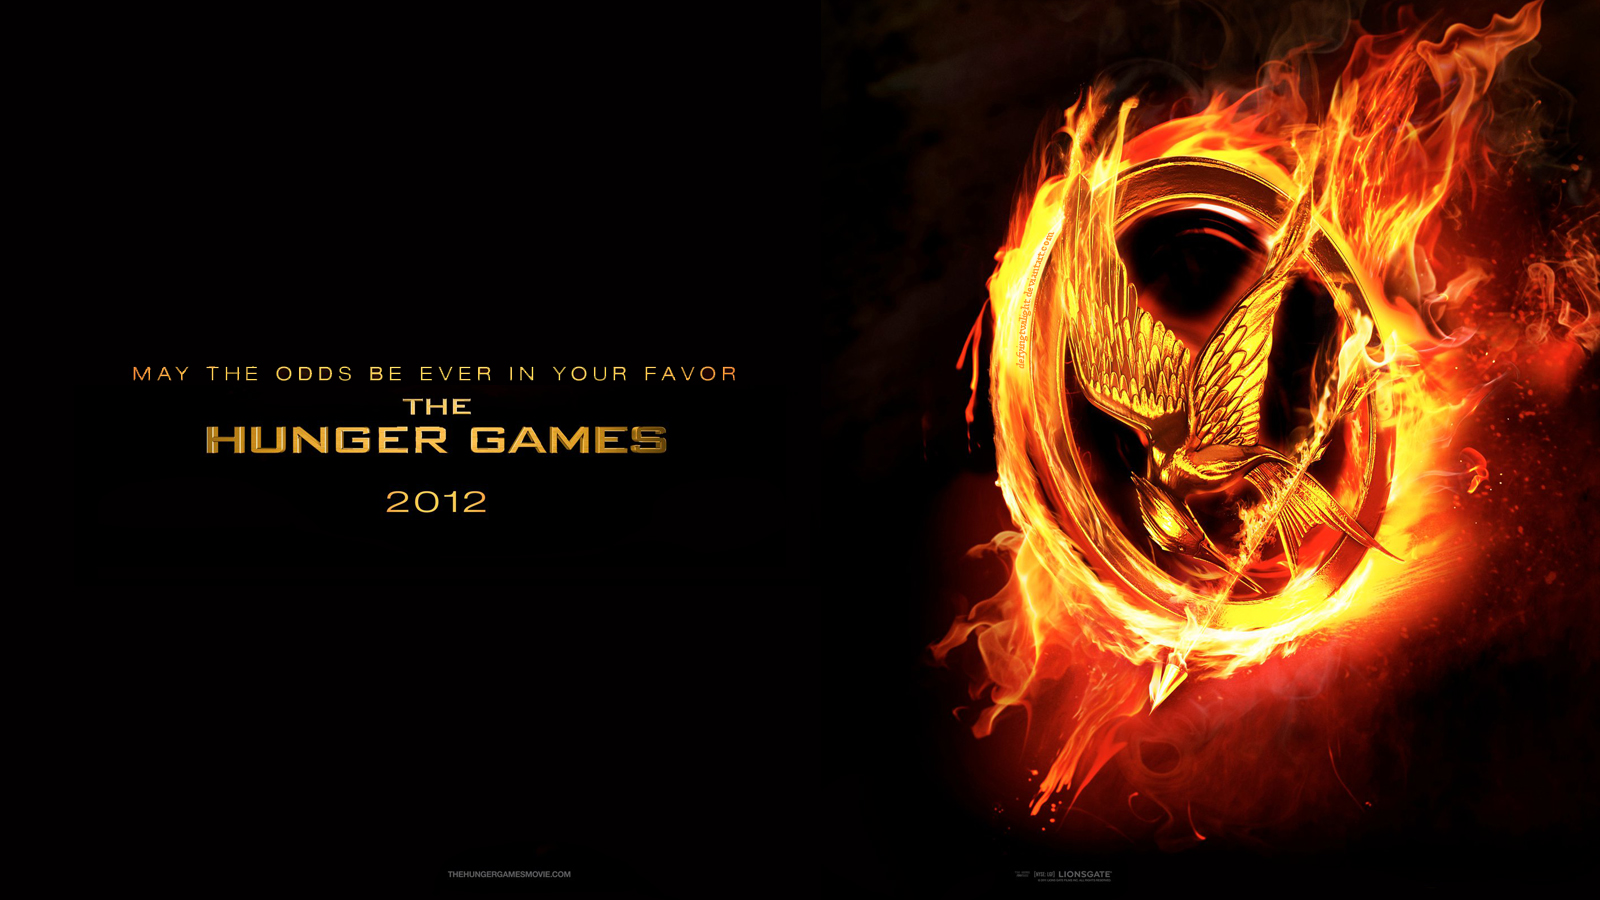 http://3.bp.blogspot.com/-_-c79JKlRfU/UCyG7QkR_nI/AAAAAAAAAbY/8wwAw_Q6AFU/s1600/-The-Hunger-Games-Movie-Poster-Wallpapers-the-hunger-games-24129231-1600-900.jpg